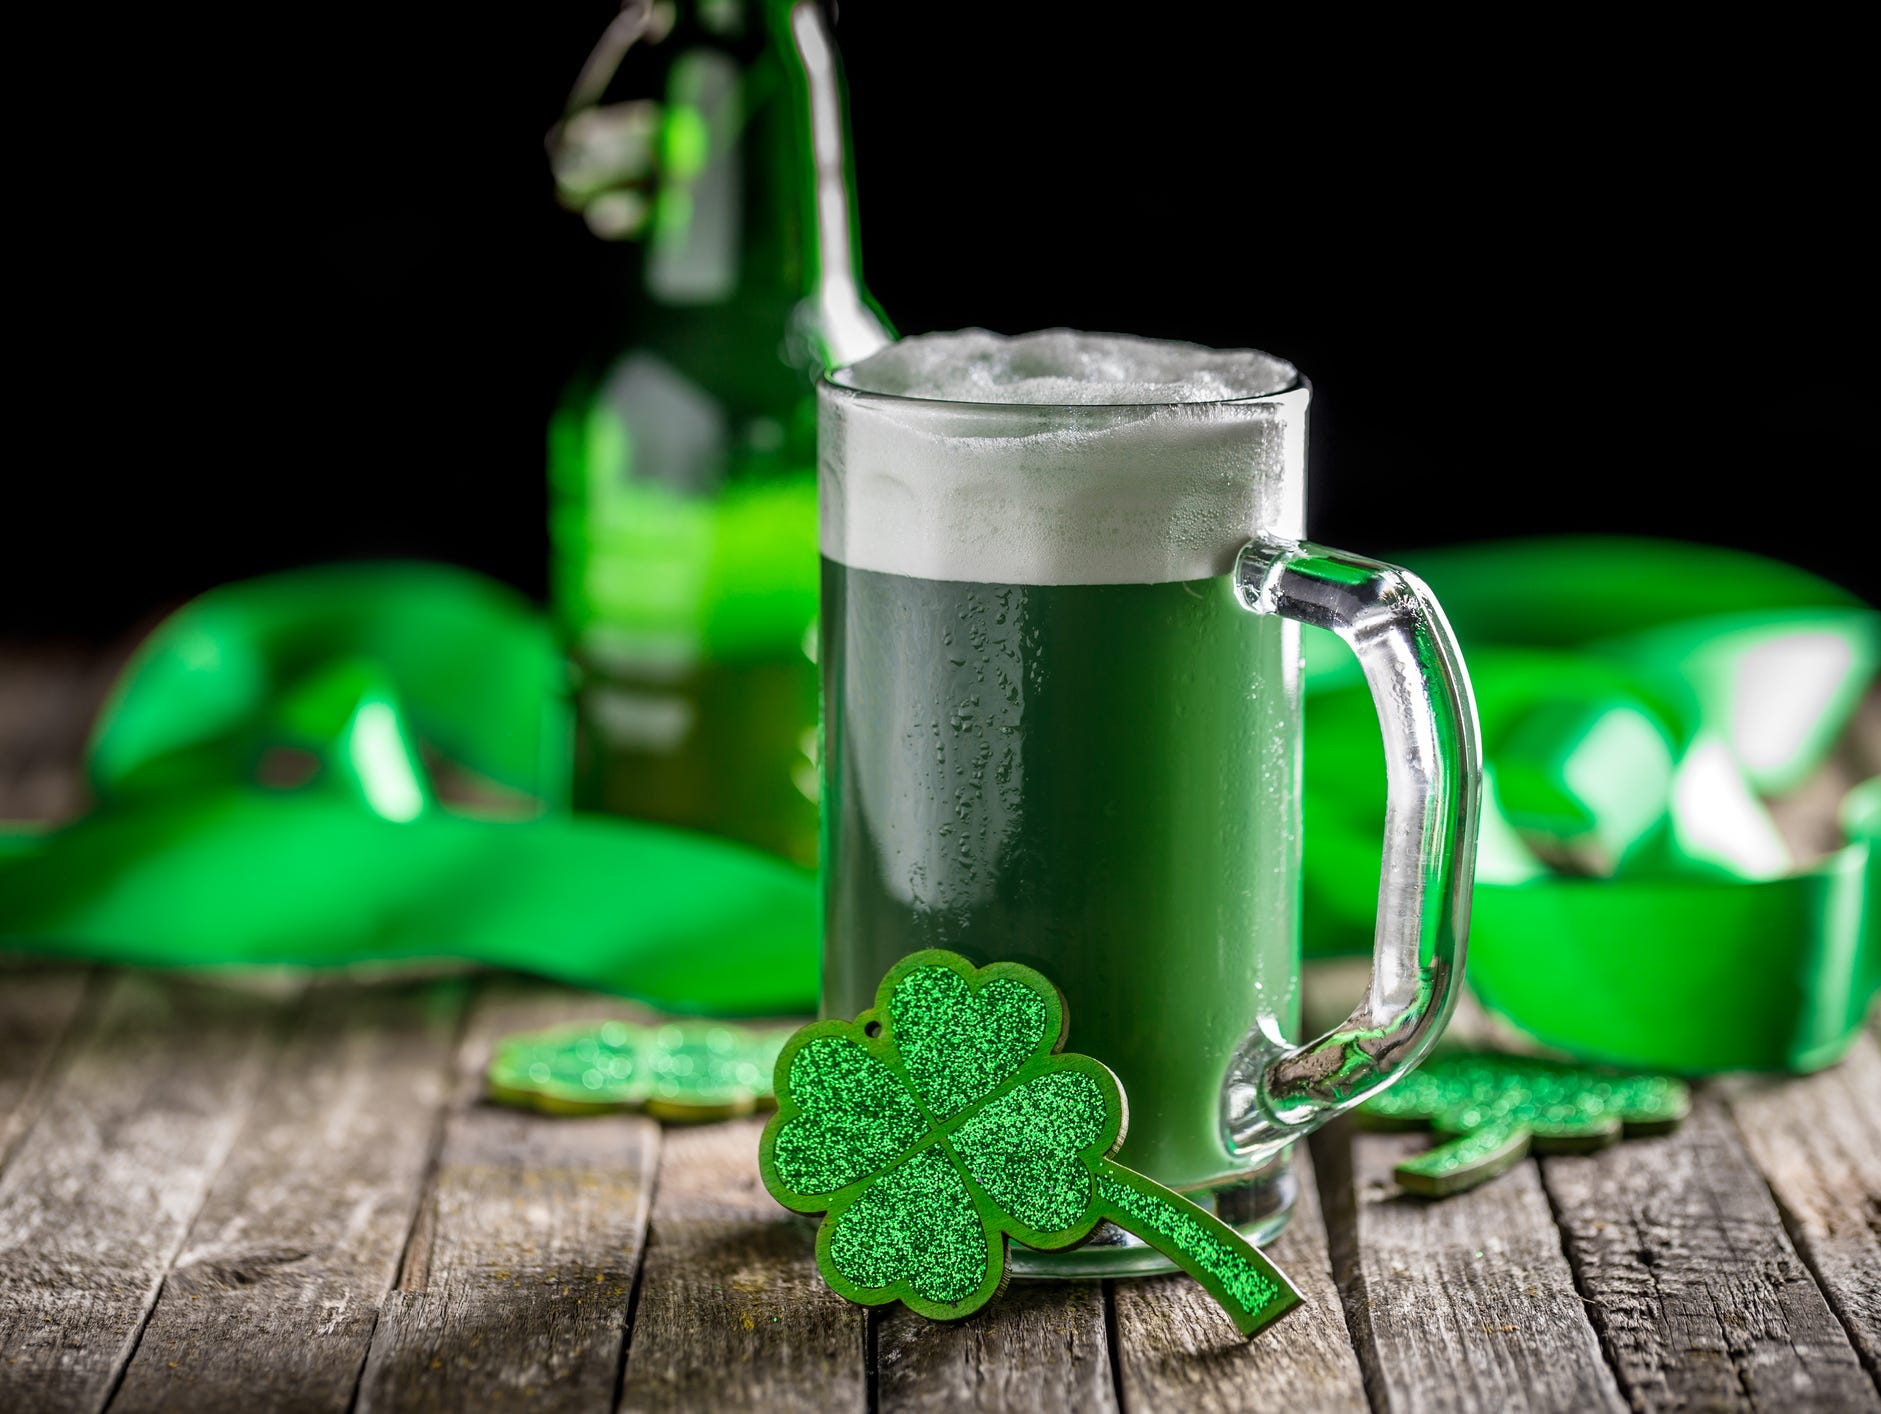 You could win a $100 gift card to celebrate St. Patty's Day at Jefferson St Pub! Enter to win through 3/8